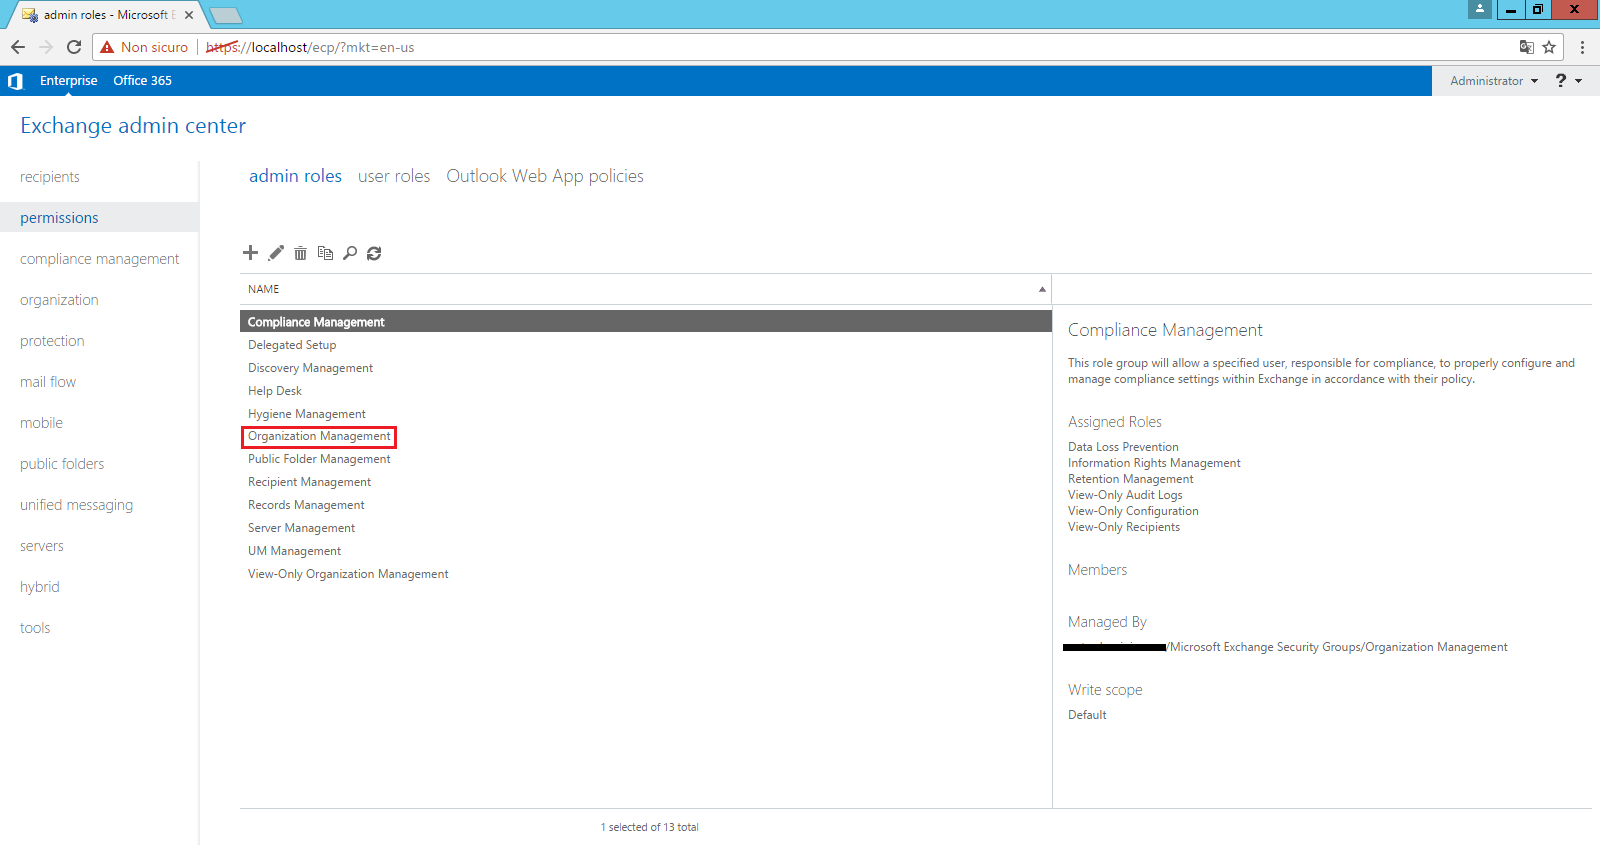 Exchange permissions for mailbox backup (export) and restore - How